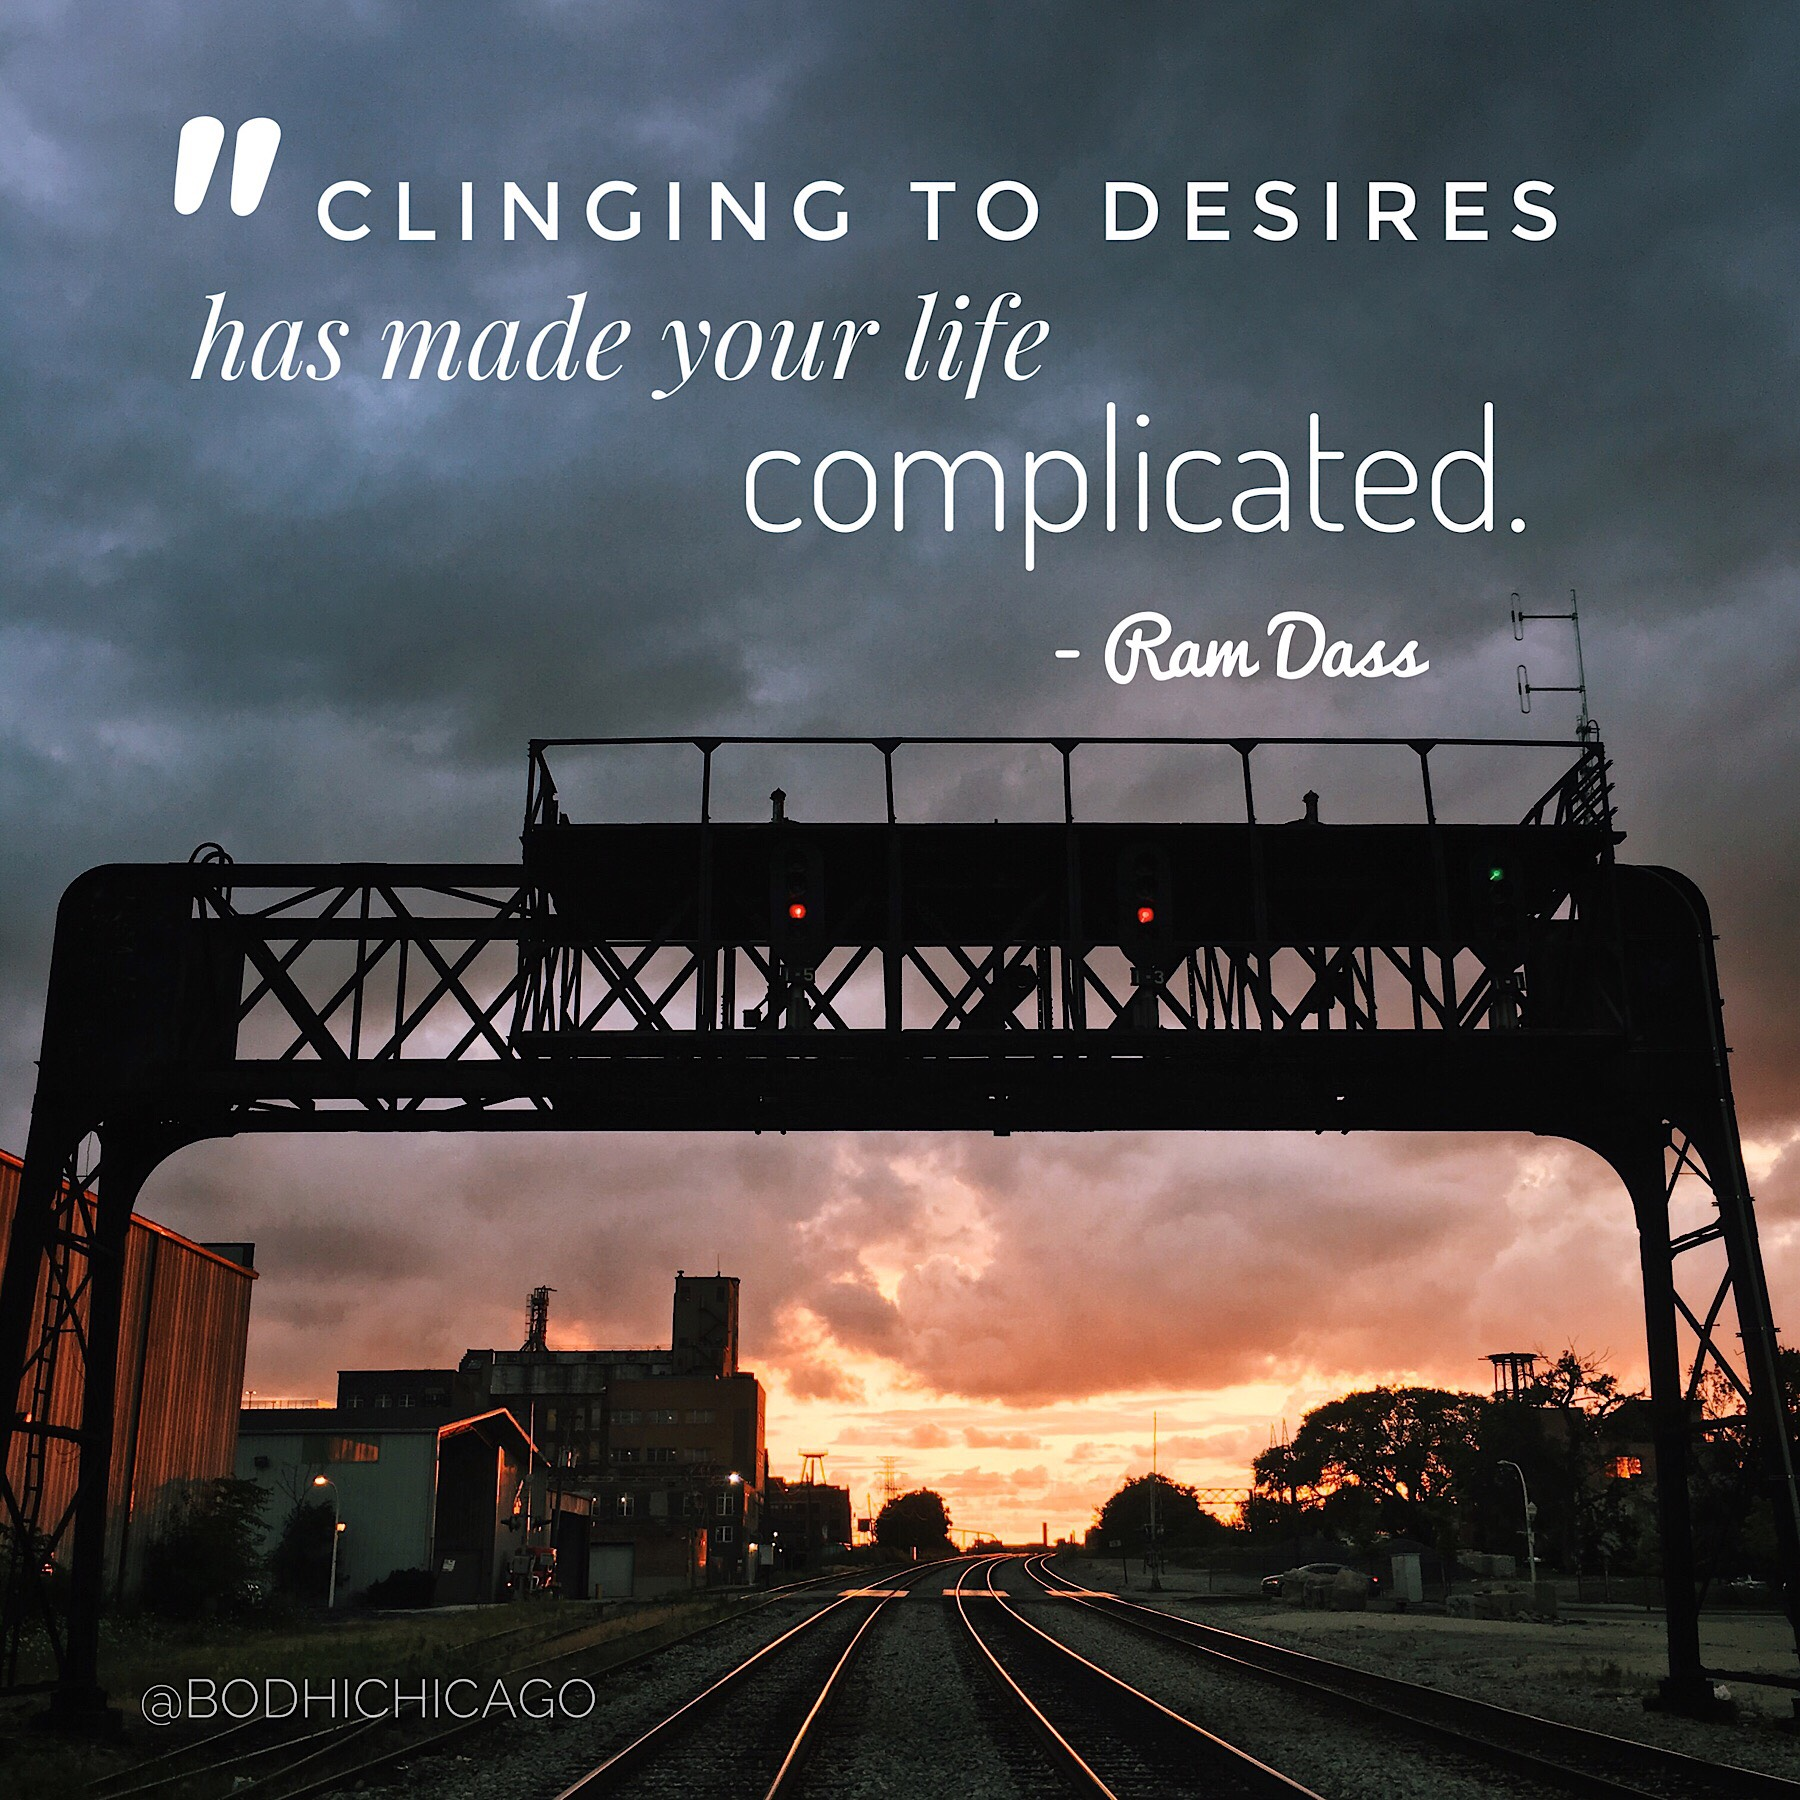 Life Spiritual Quotes Wednesday Wisdom Quote Ram Dass On Clinging To Desires  Bodhi